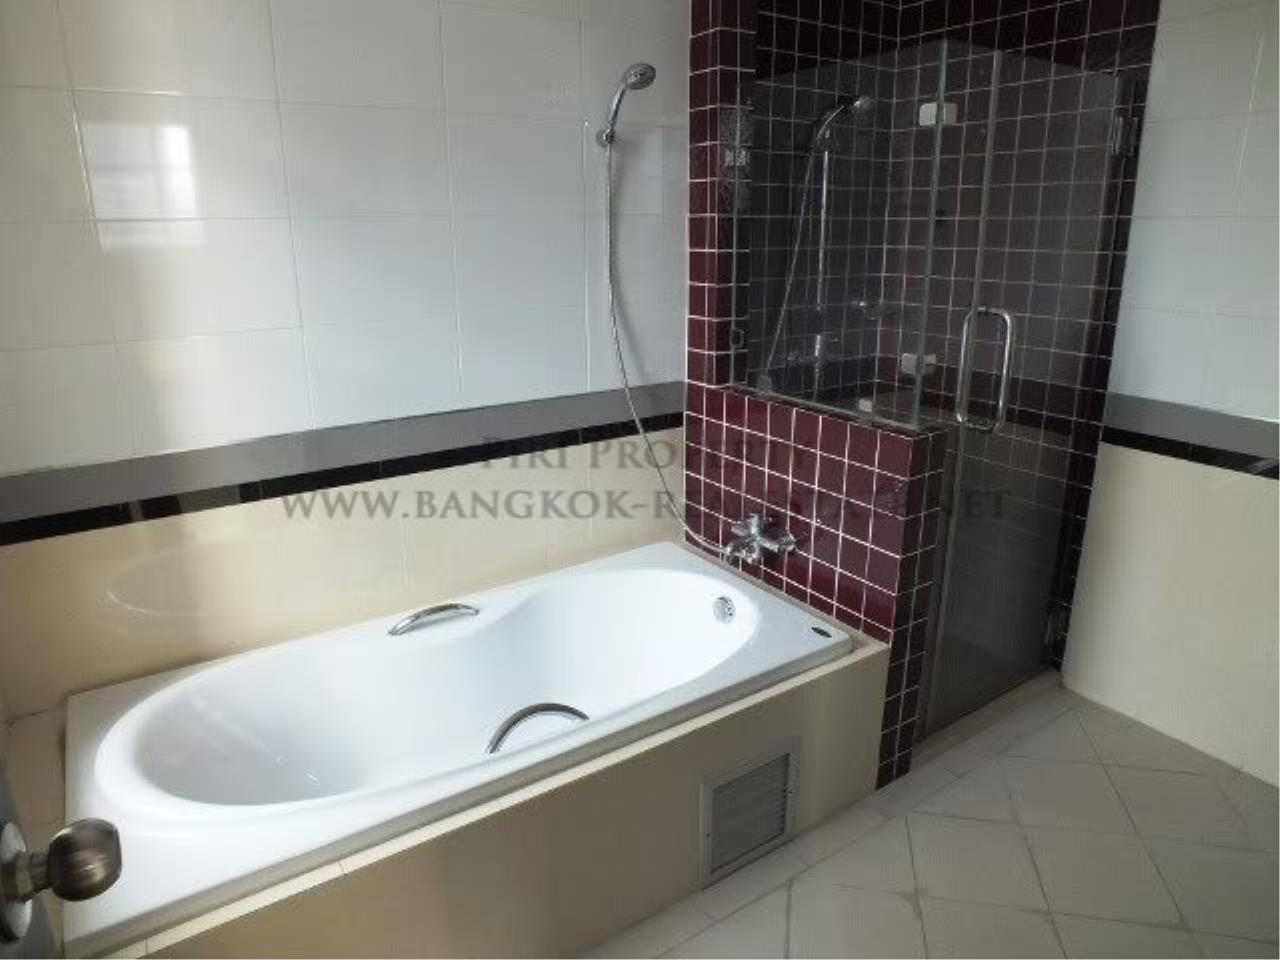 Piri Property Agency's AP Citismart for Rent - Nice 2 Bedroom right next to the BTS Asoke 6